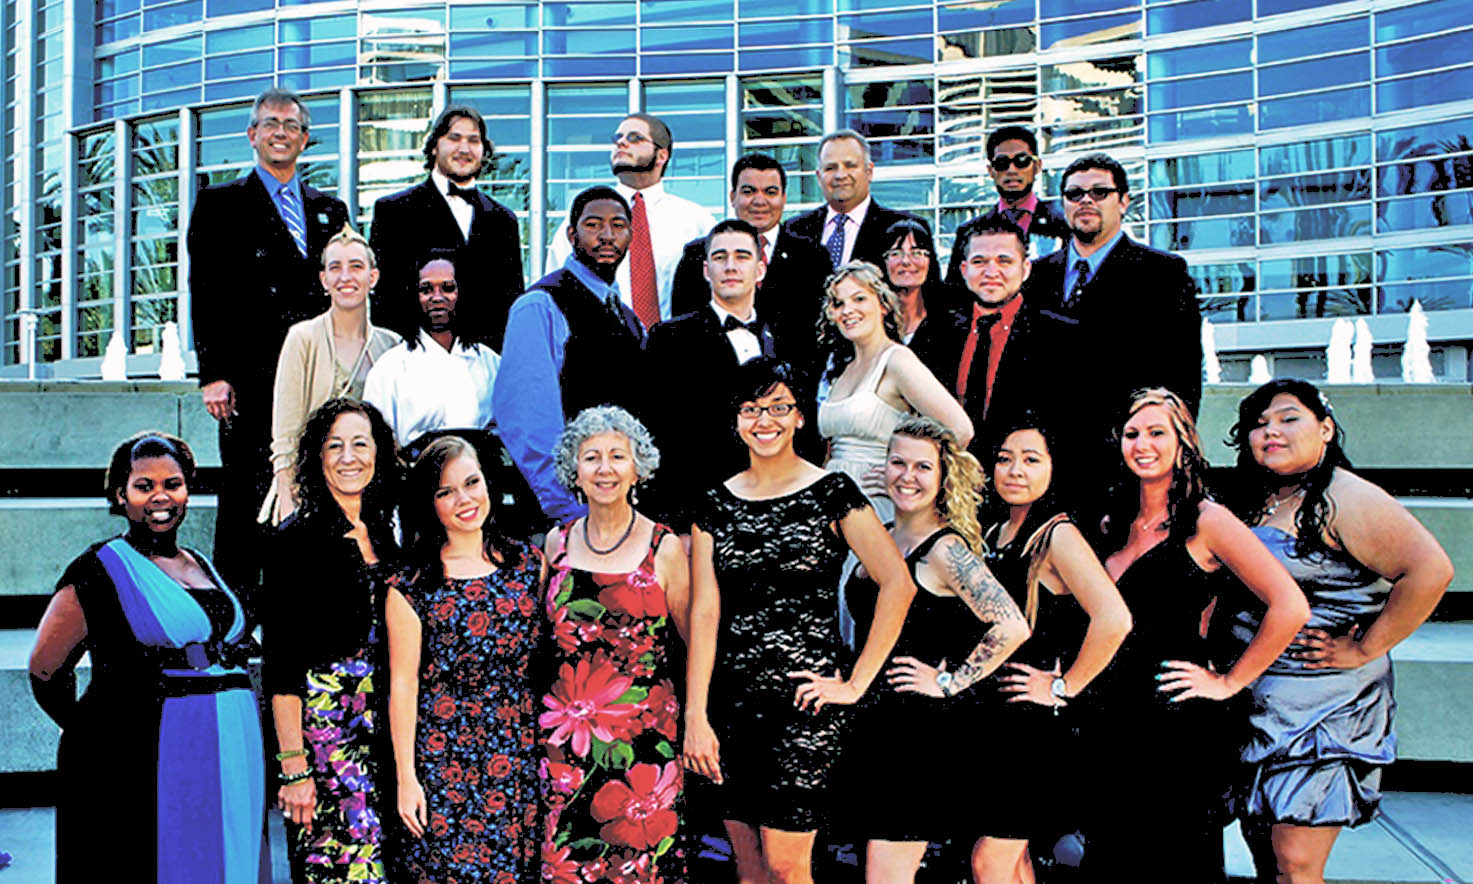 Read the full story, CCCC Phi Beta Lambda among the best at nationals